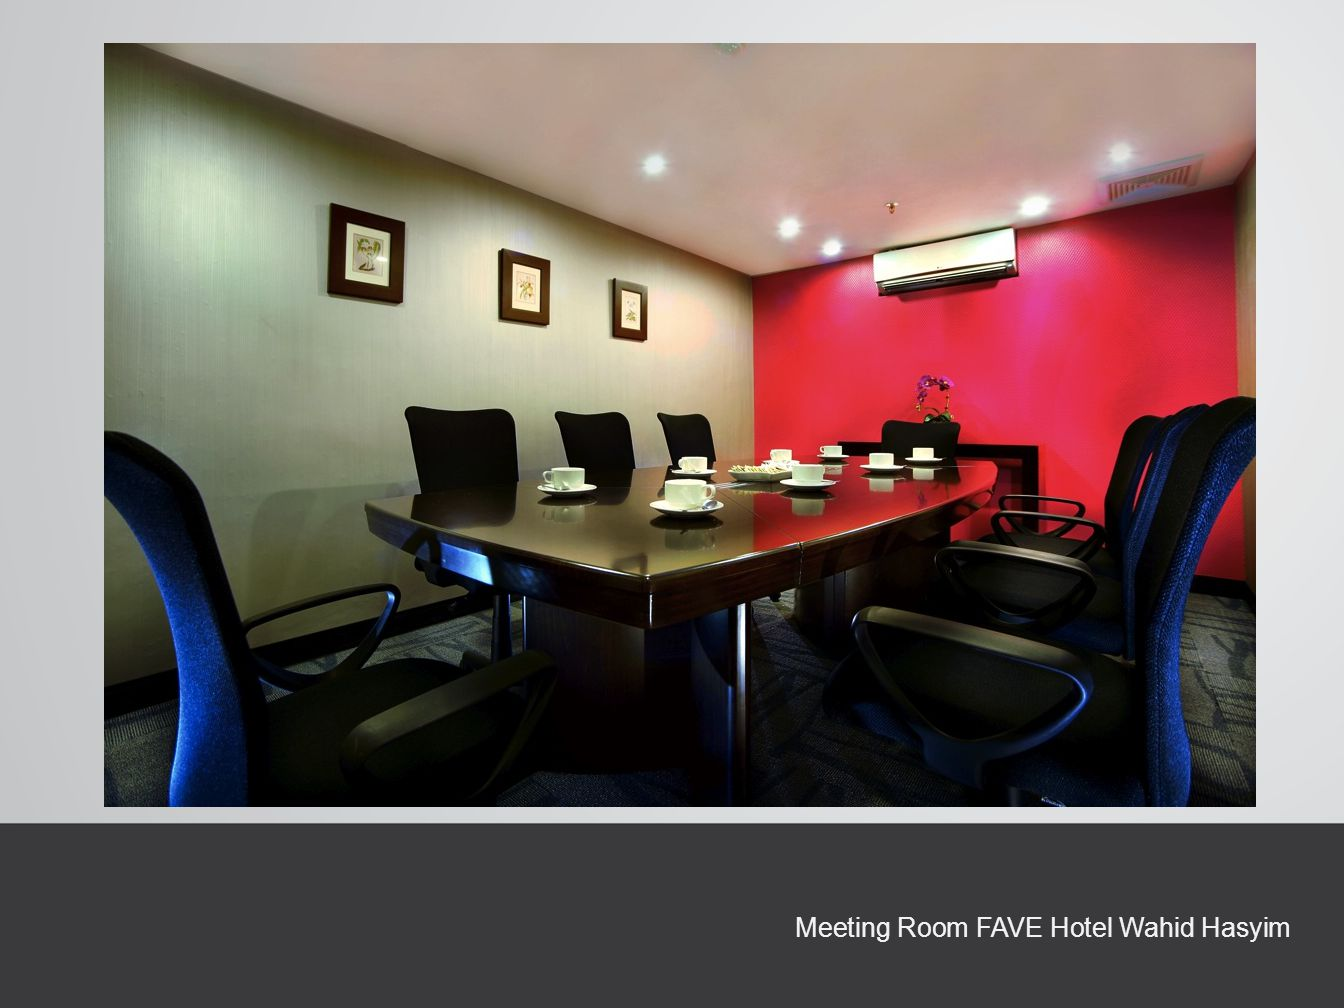 Meeting Room FAVE Hotel Wahid Hasyim